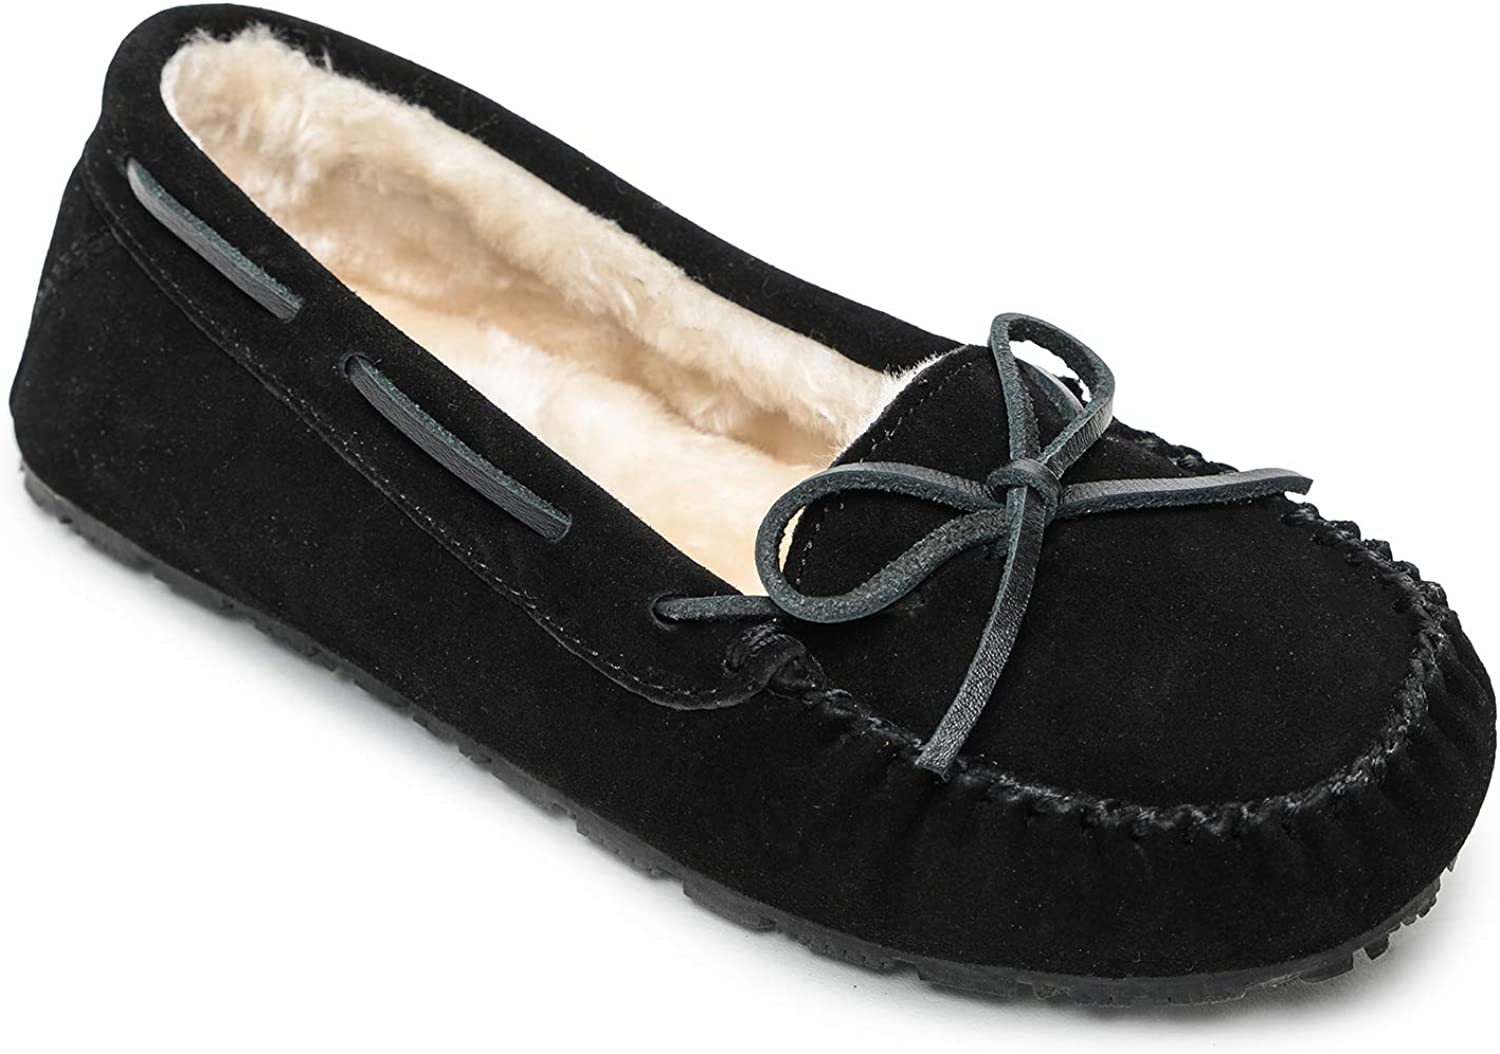 Sperry Women's Junior Trapper Lace-Up Slippers, Black, 10 M US